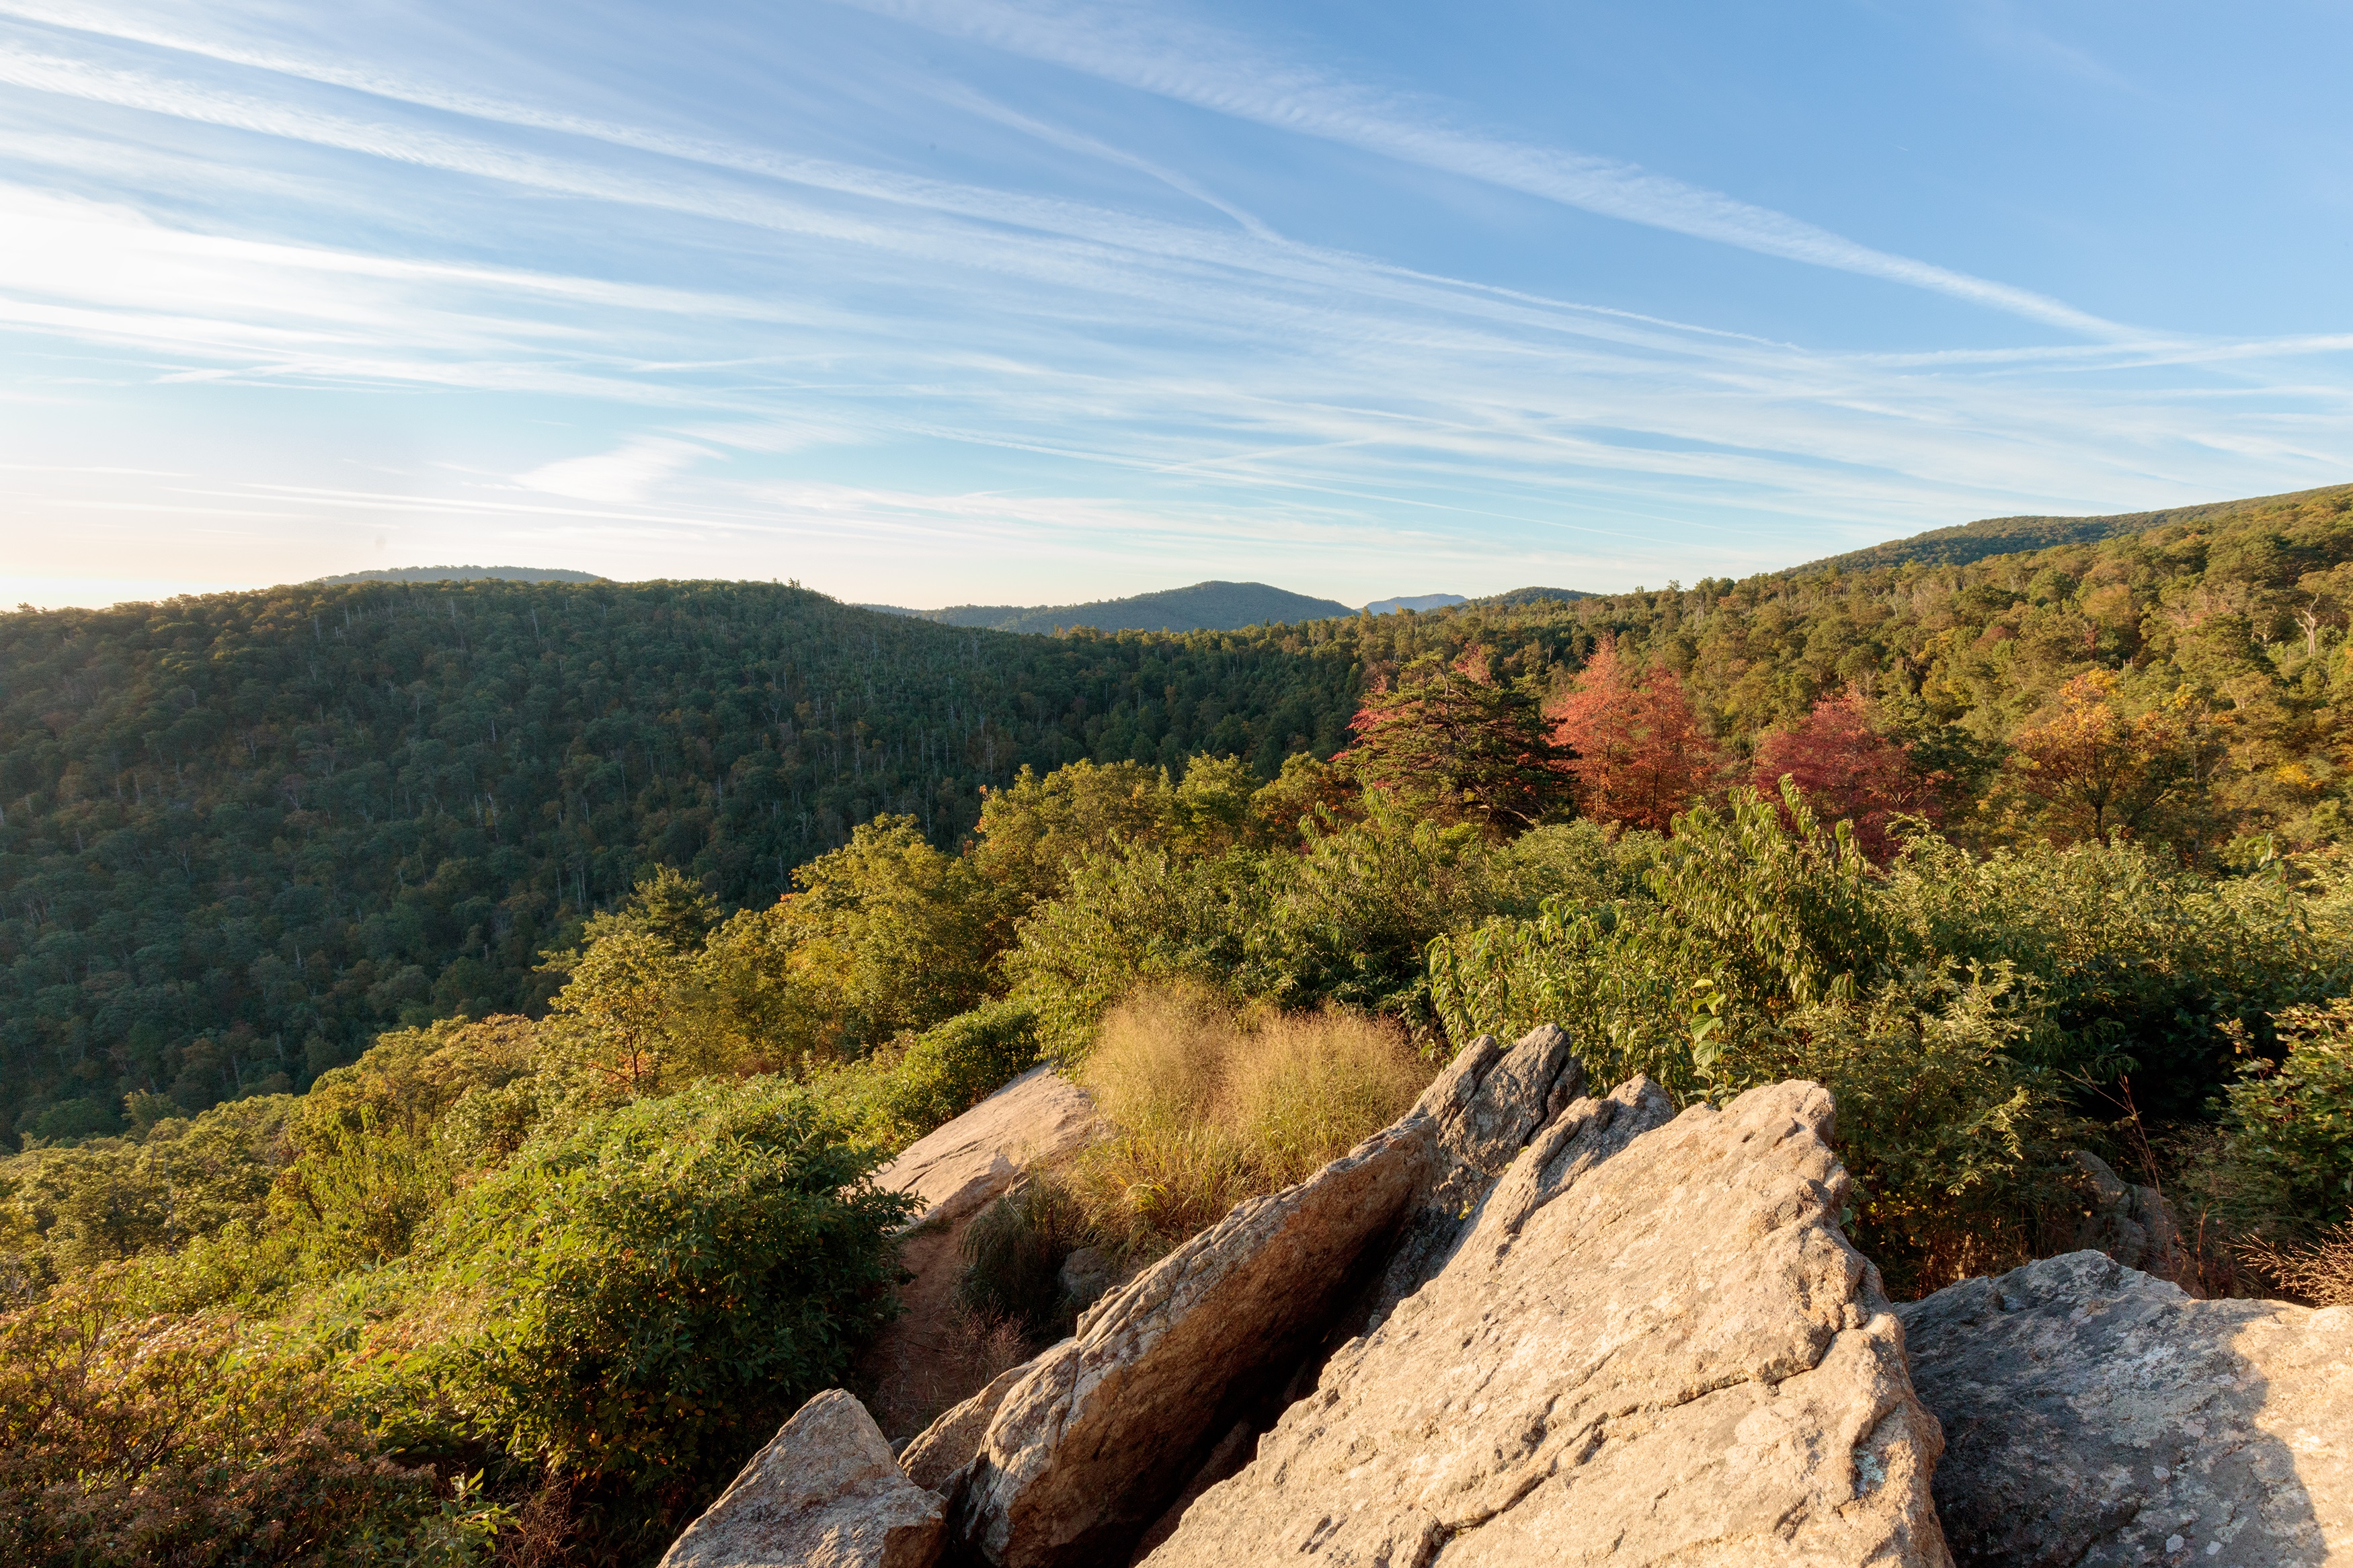 Autumn does her thing at Hazel Mountain Overlook, mile 33 on Skyline Drive